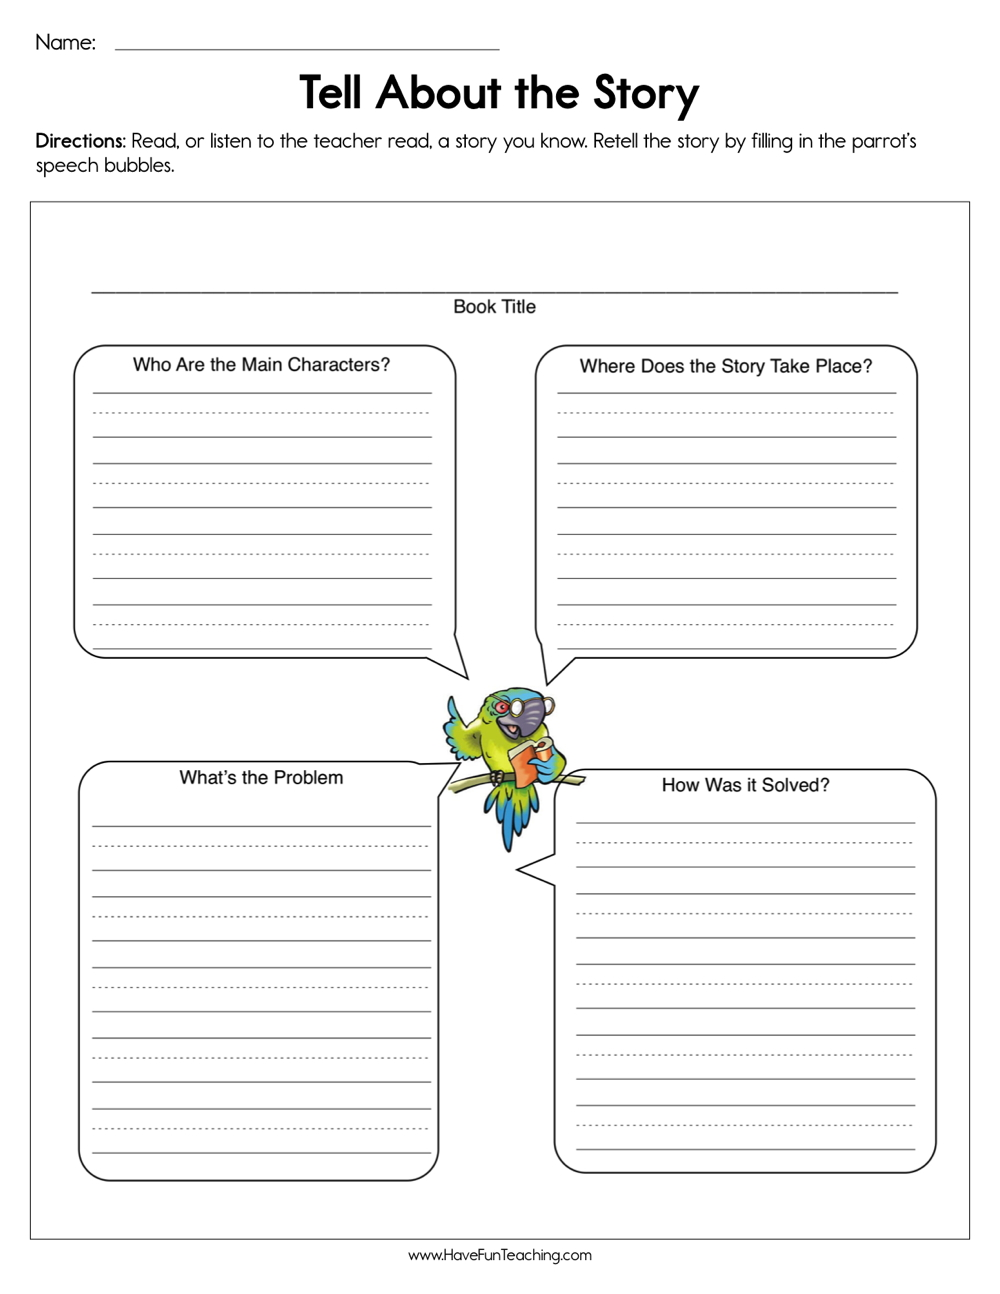 medium resolution of Tell About the Story Worksheet • Have Fun Teaching